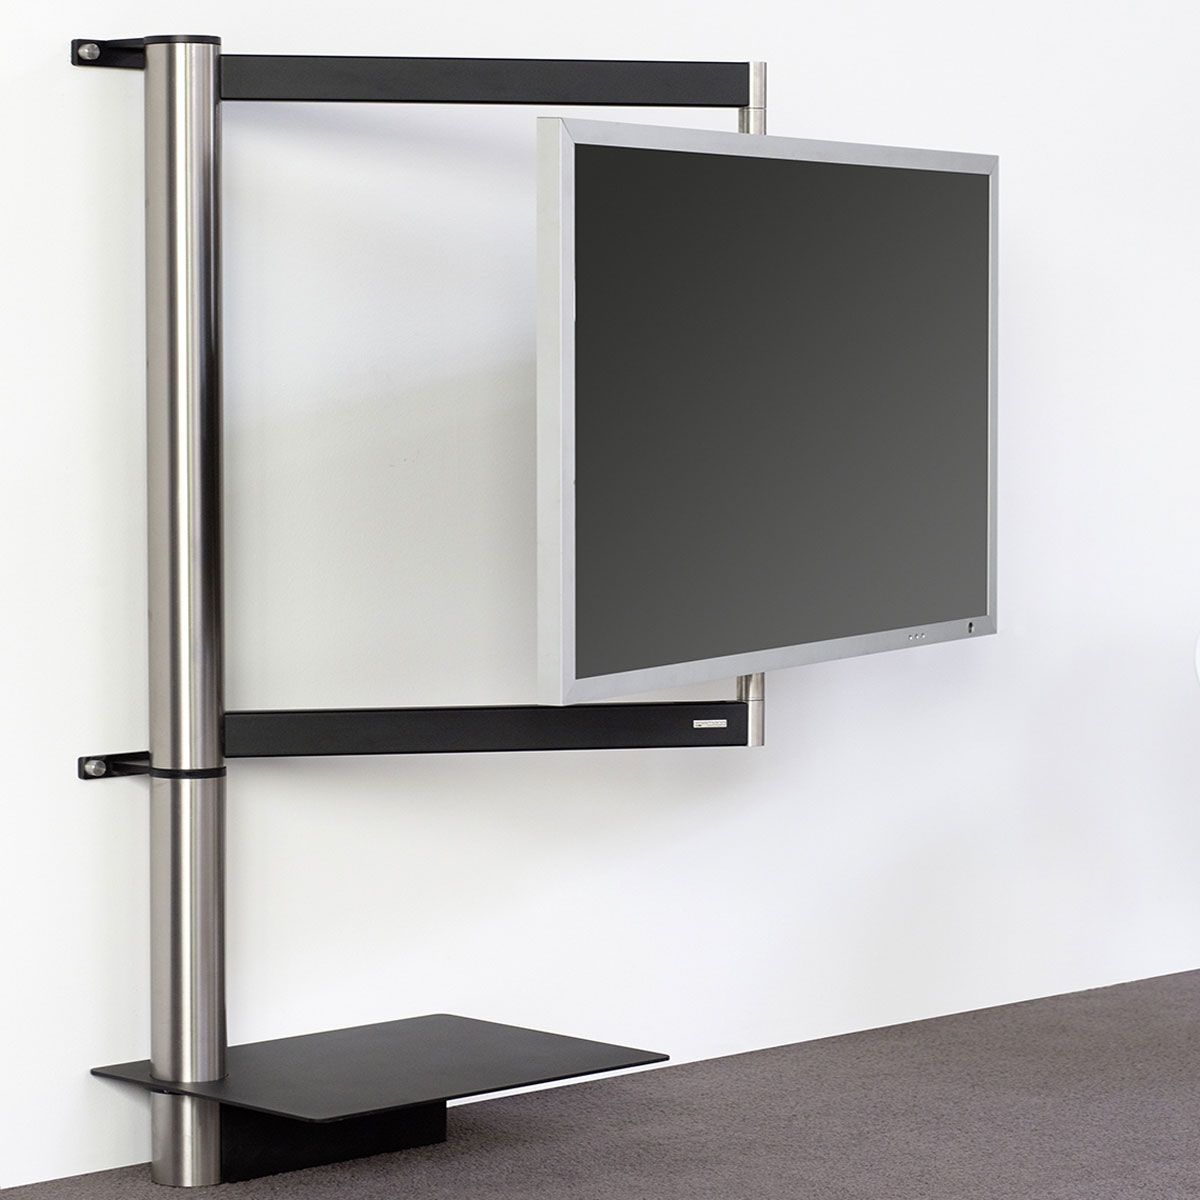 tv wandhalter fernsehhalter schwenkbar rack schwenkarm. Black Bedroom Furniture Sets. Home Design Ideas